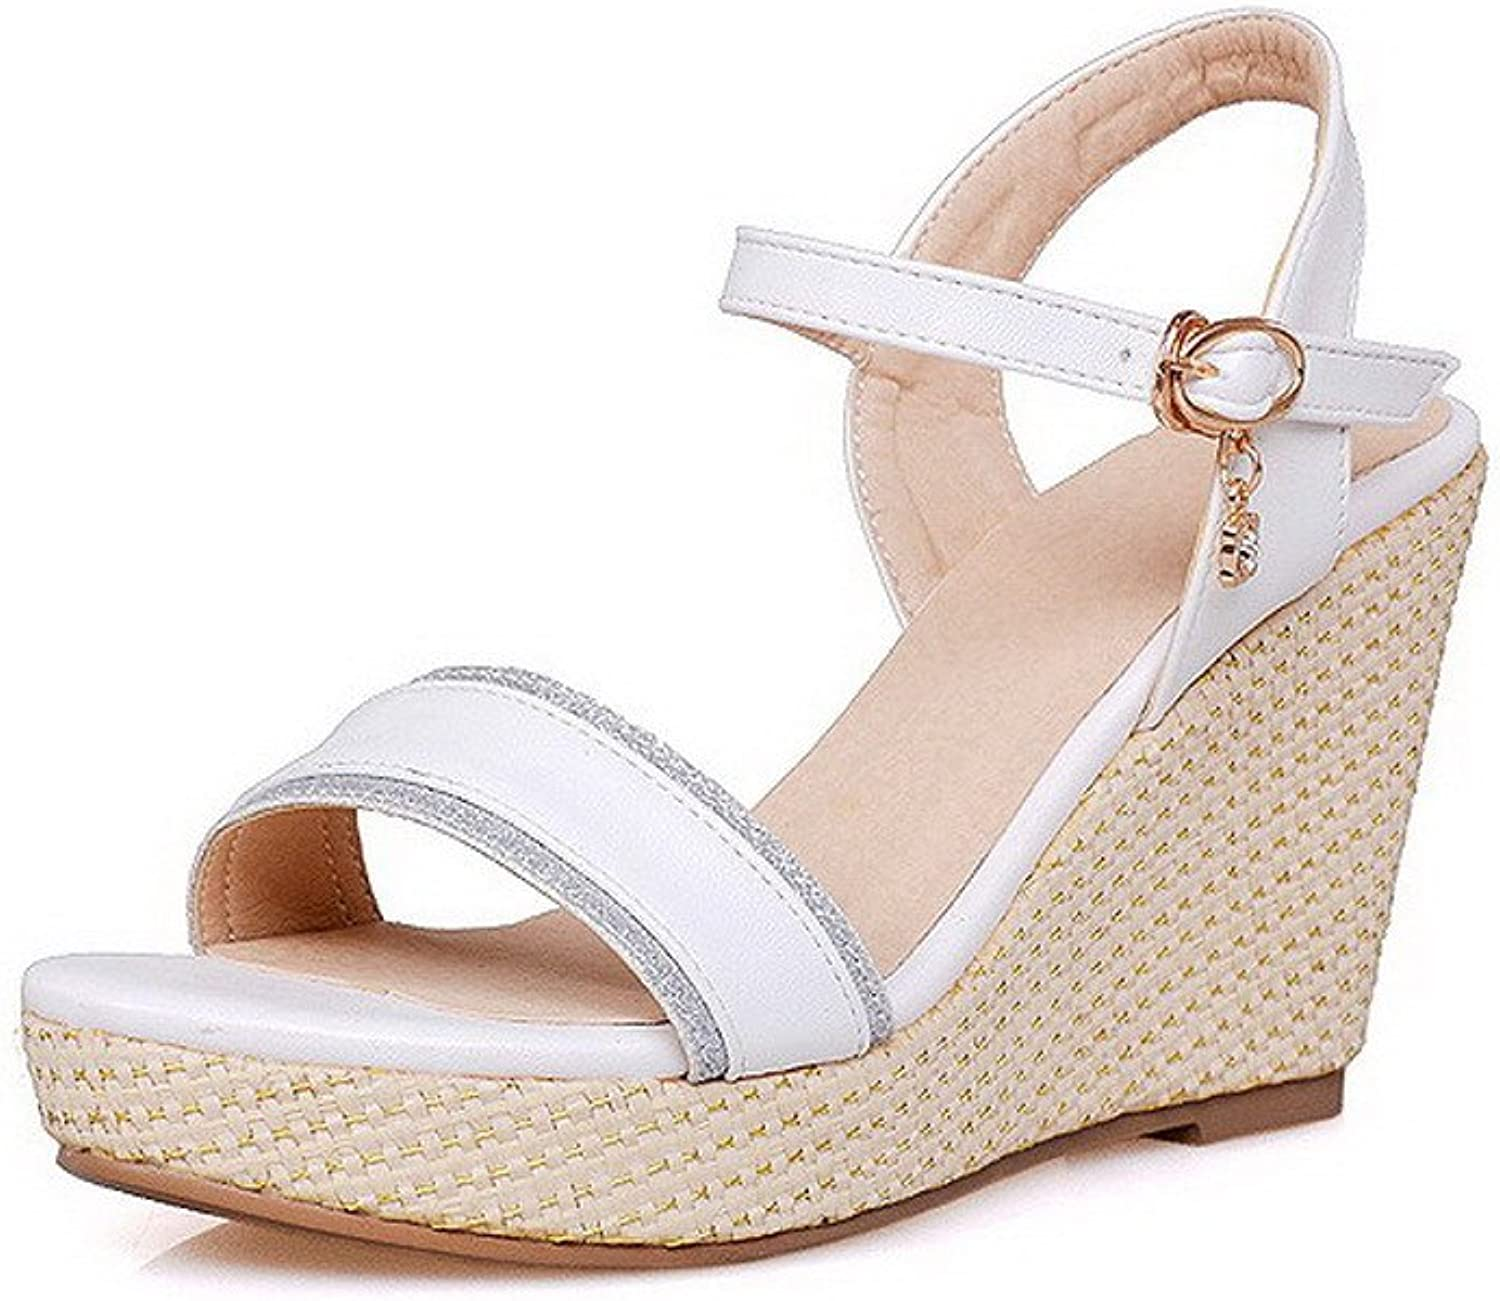 AmoonyFashion Women's Soft Material Buckle Open Toe Kitten-Heels Solid Sandals